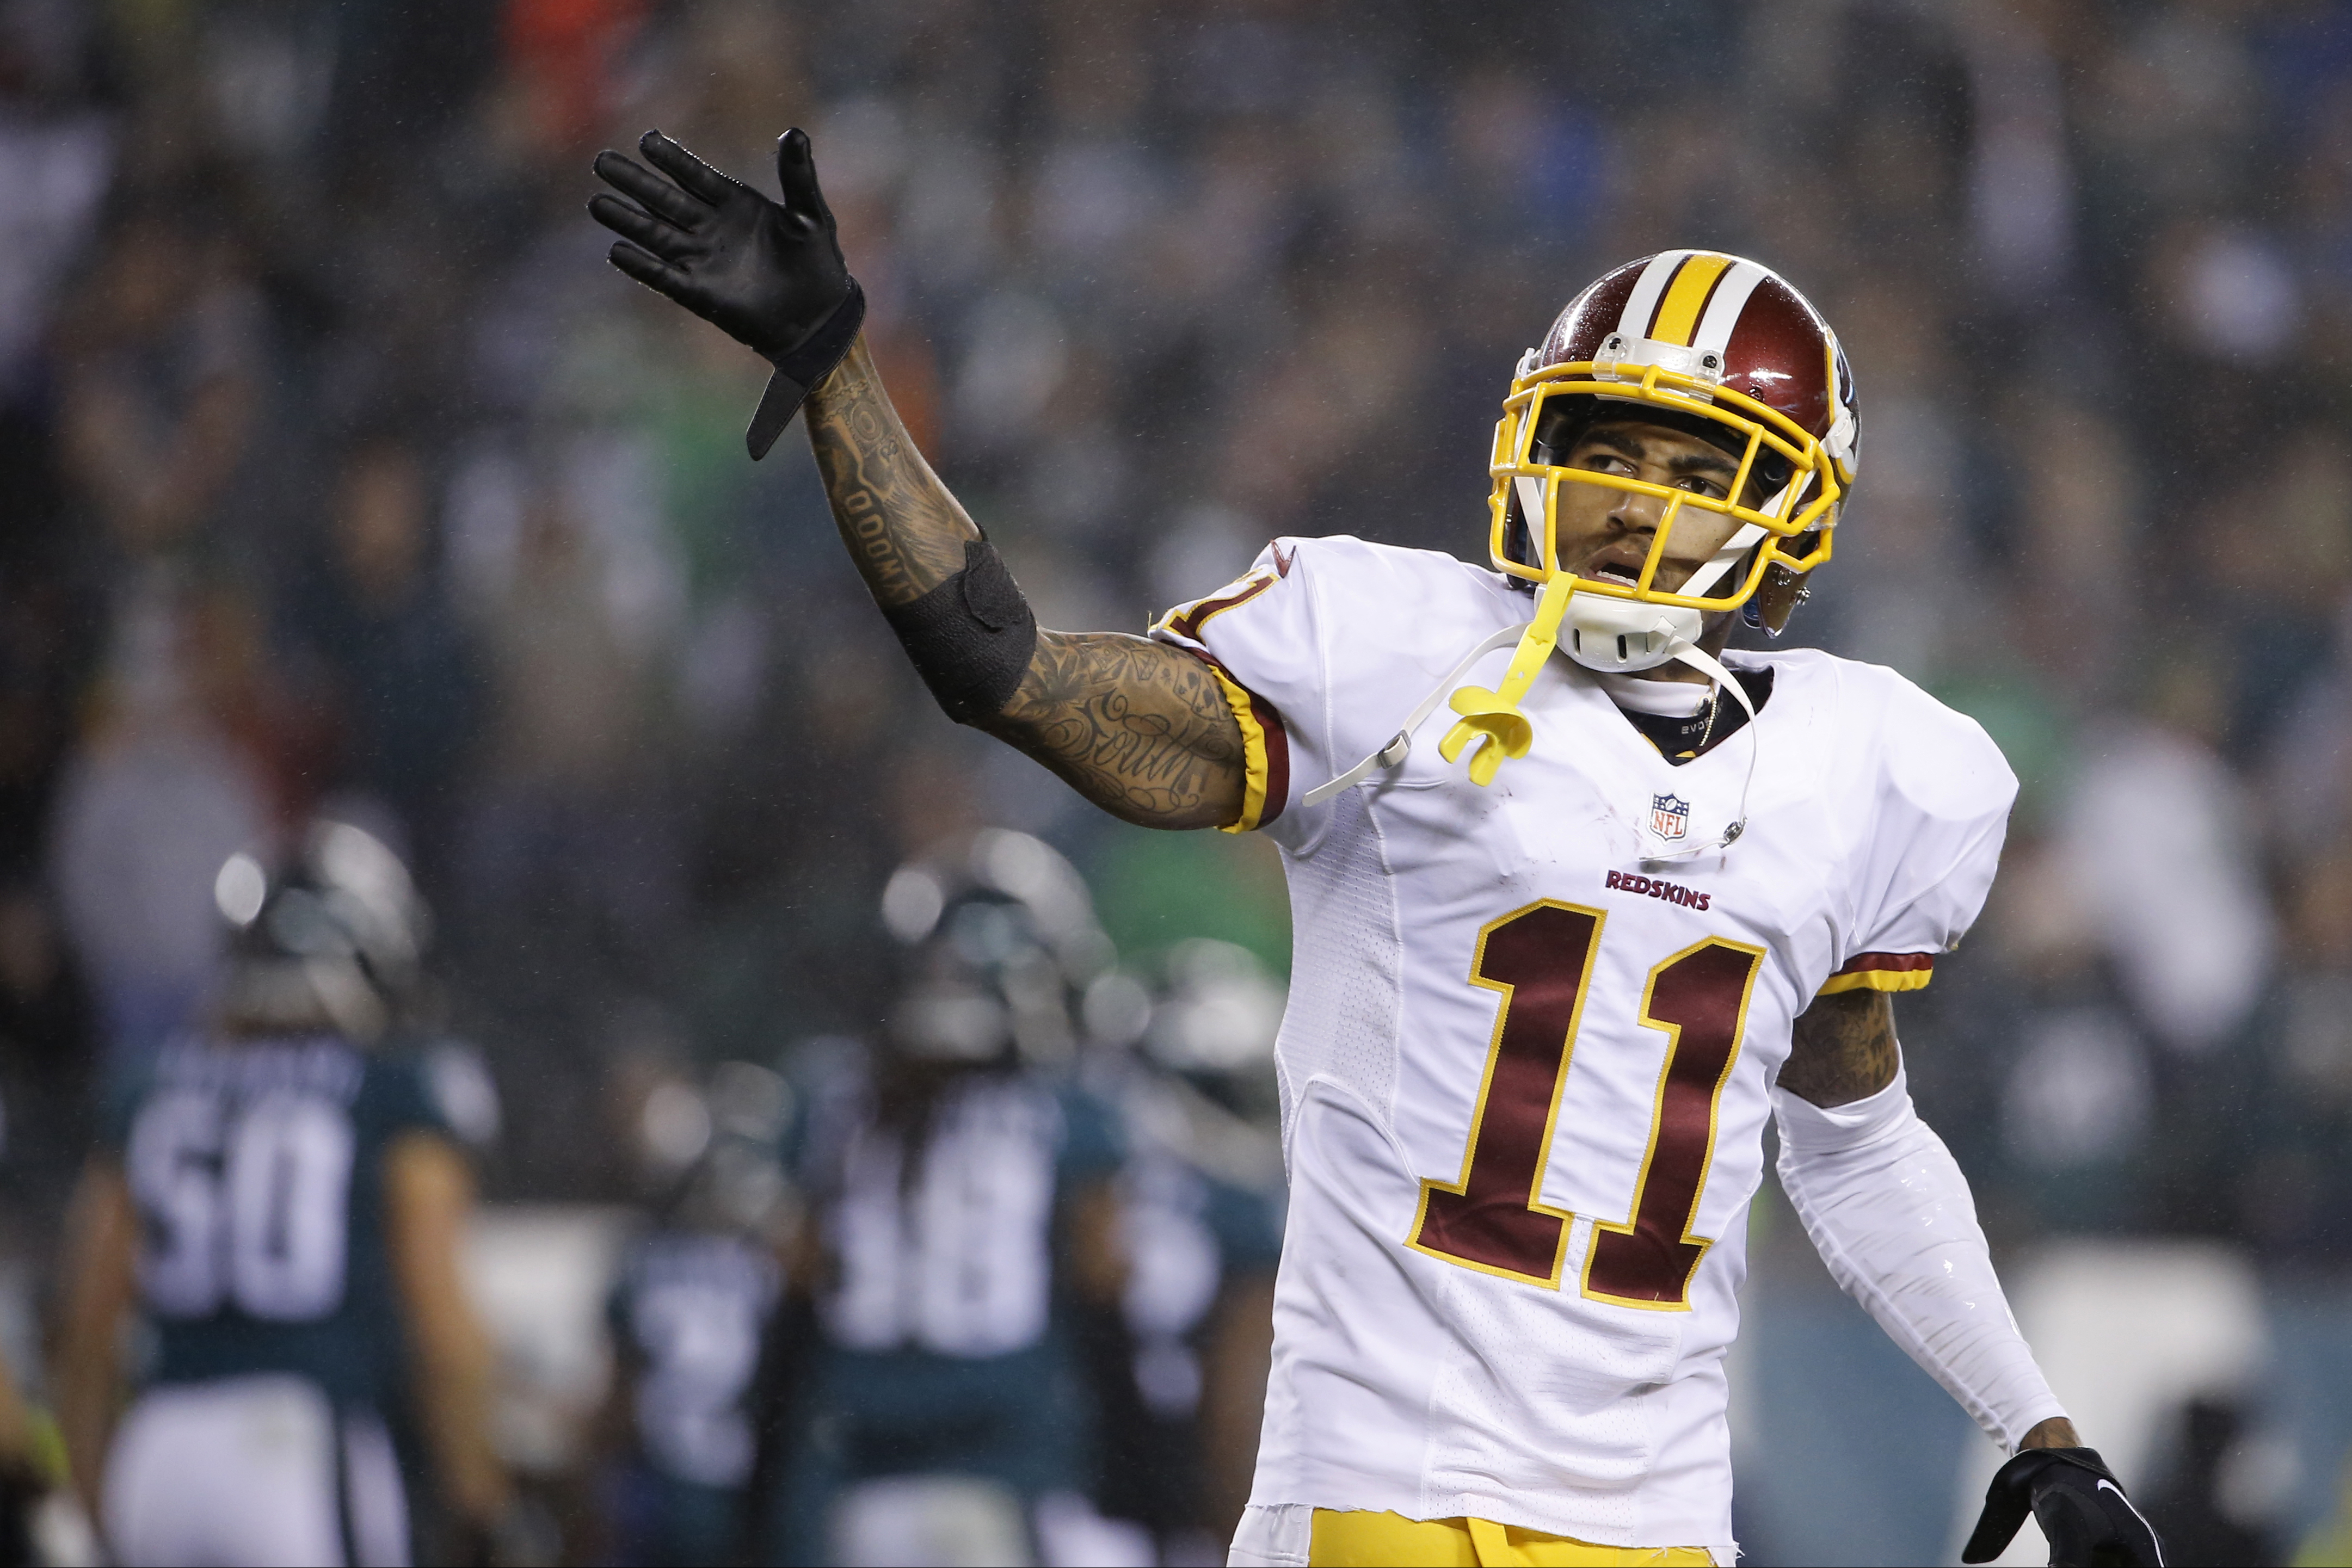 Washington Redskins' DeSean Jackson reacts after a two-point conversion by Jamison Crowder in the second half of an NFL football game against the Philadelphia Eagles, Saturday, Dec. 26, 2015, in Philadelphia.  (AP Photo/Matt Rourke)